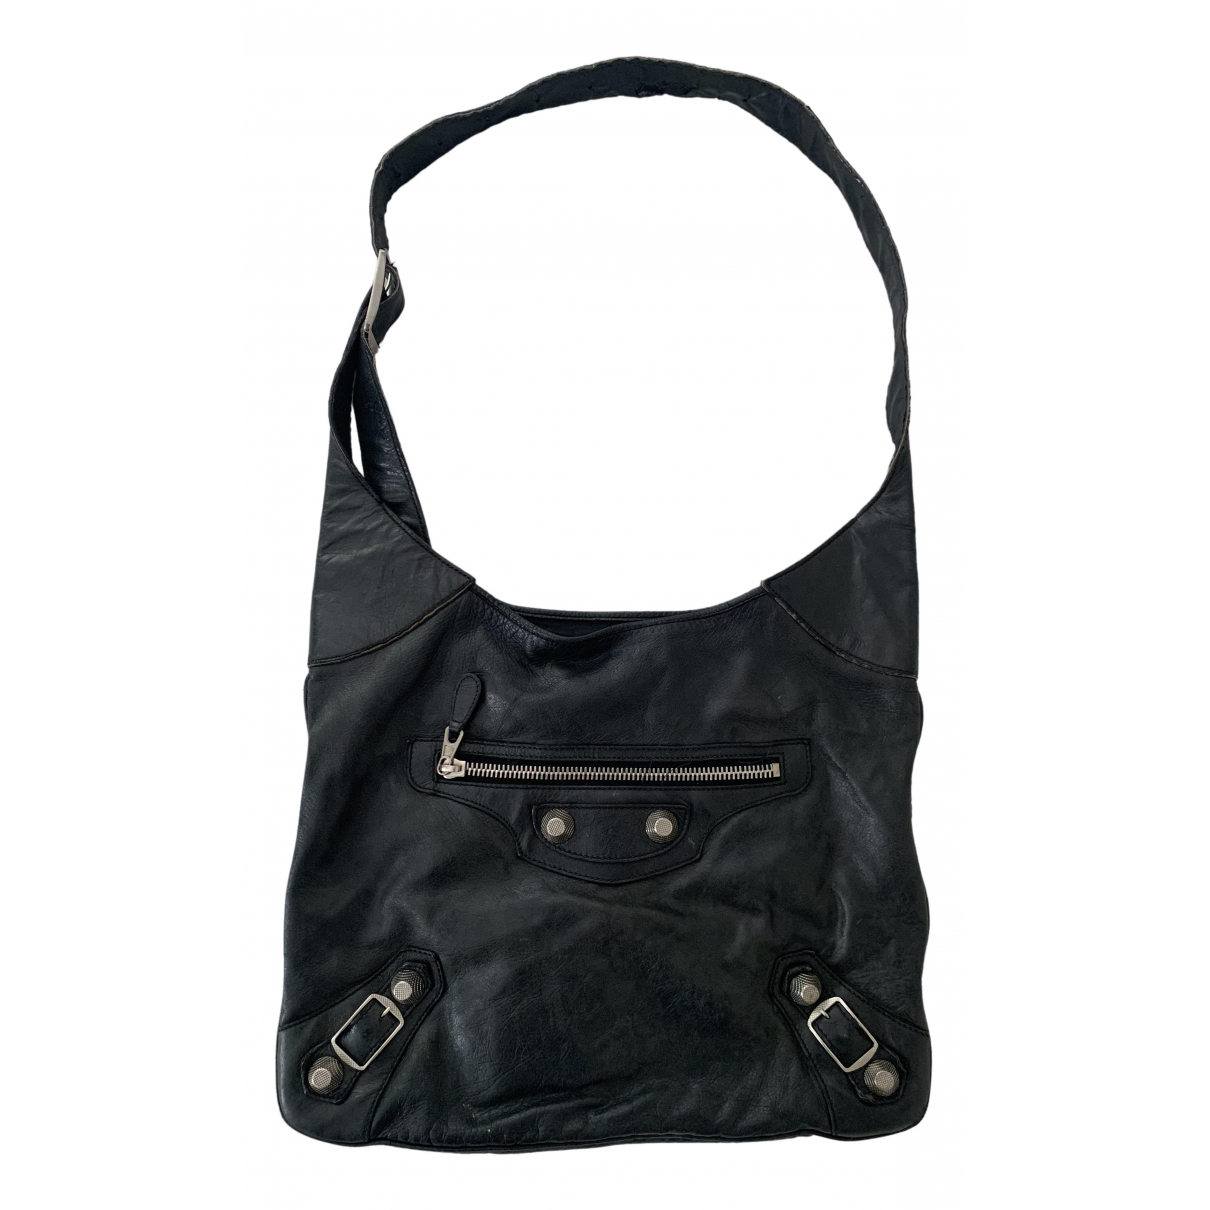 Balenciaga \N Black Leather handbag for Women \N